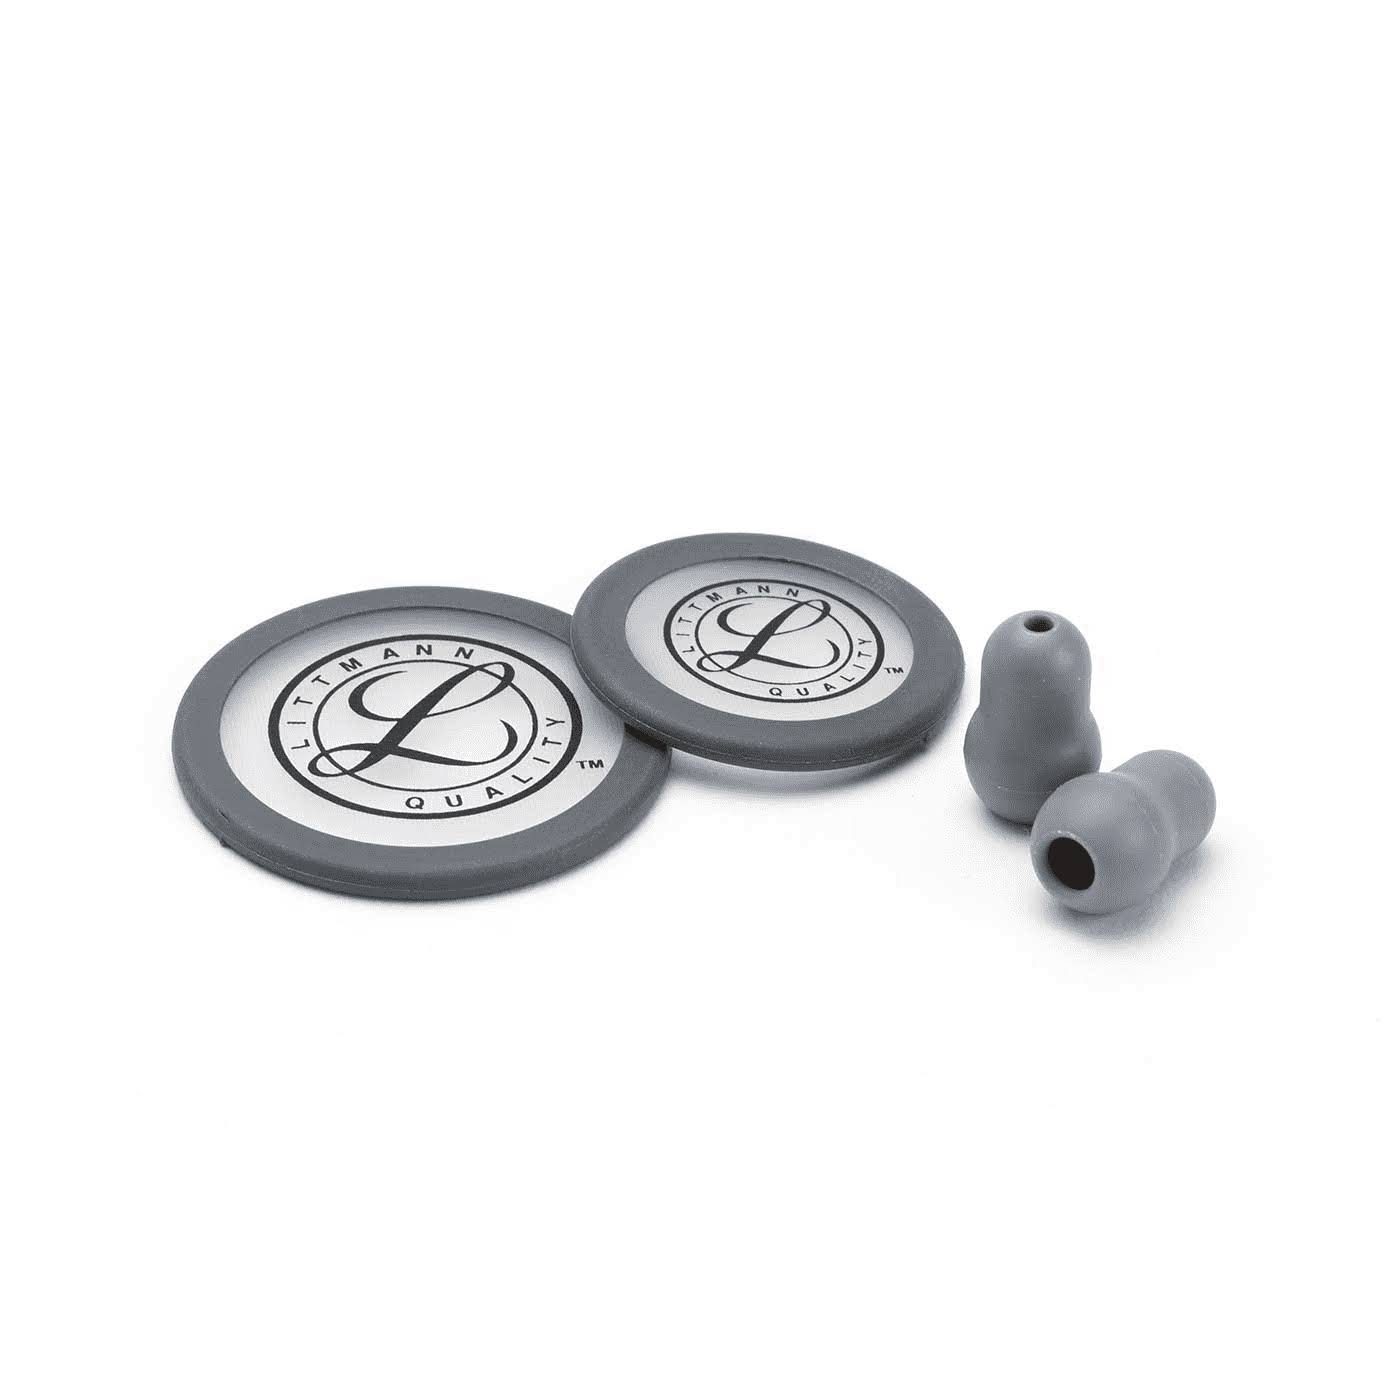 Littmann 0707387784010 Stethoscope Spare Parts Kit - Grey